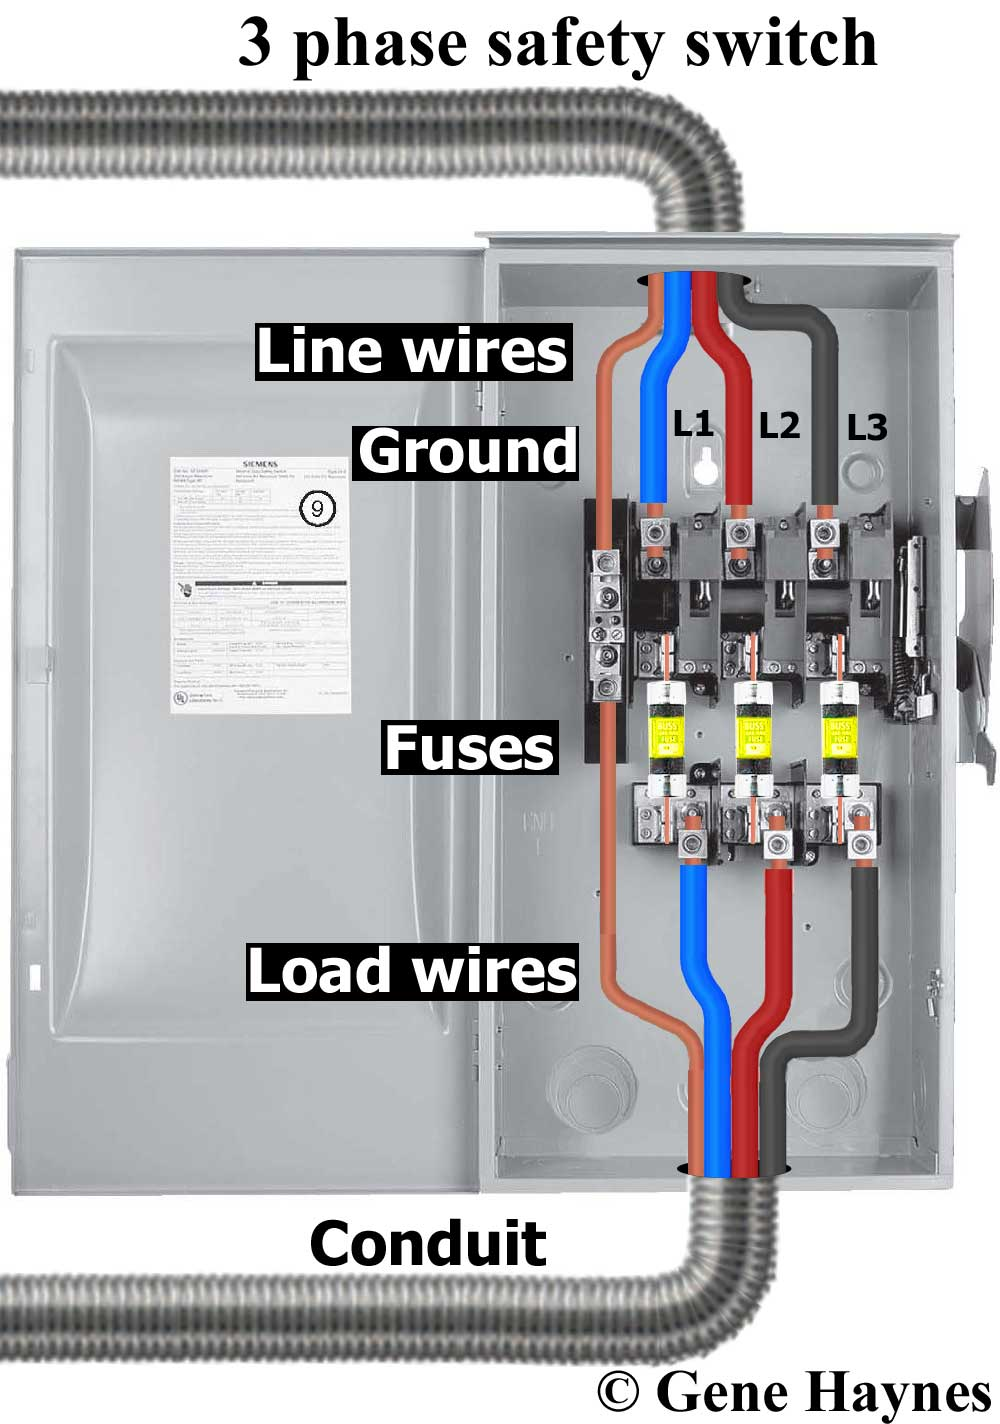 hight resolution of 30 amp disconnect wiring diagram wiring diagram name eaton 60 amp 240v disconnect wiring diagram source air conditioning